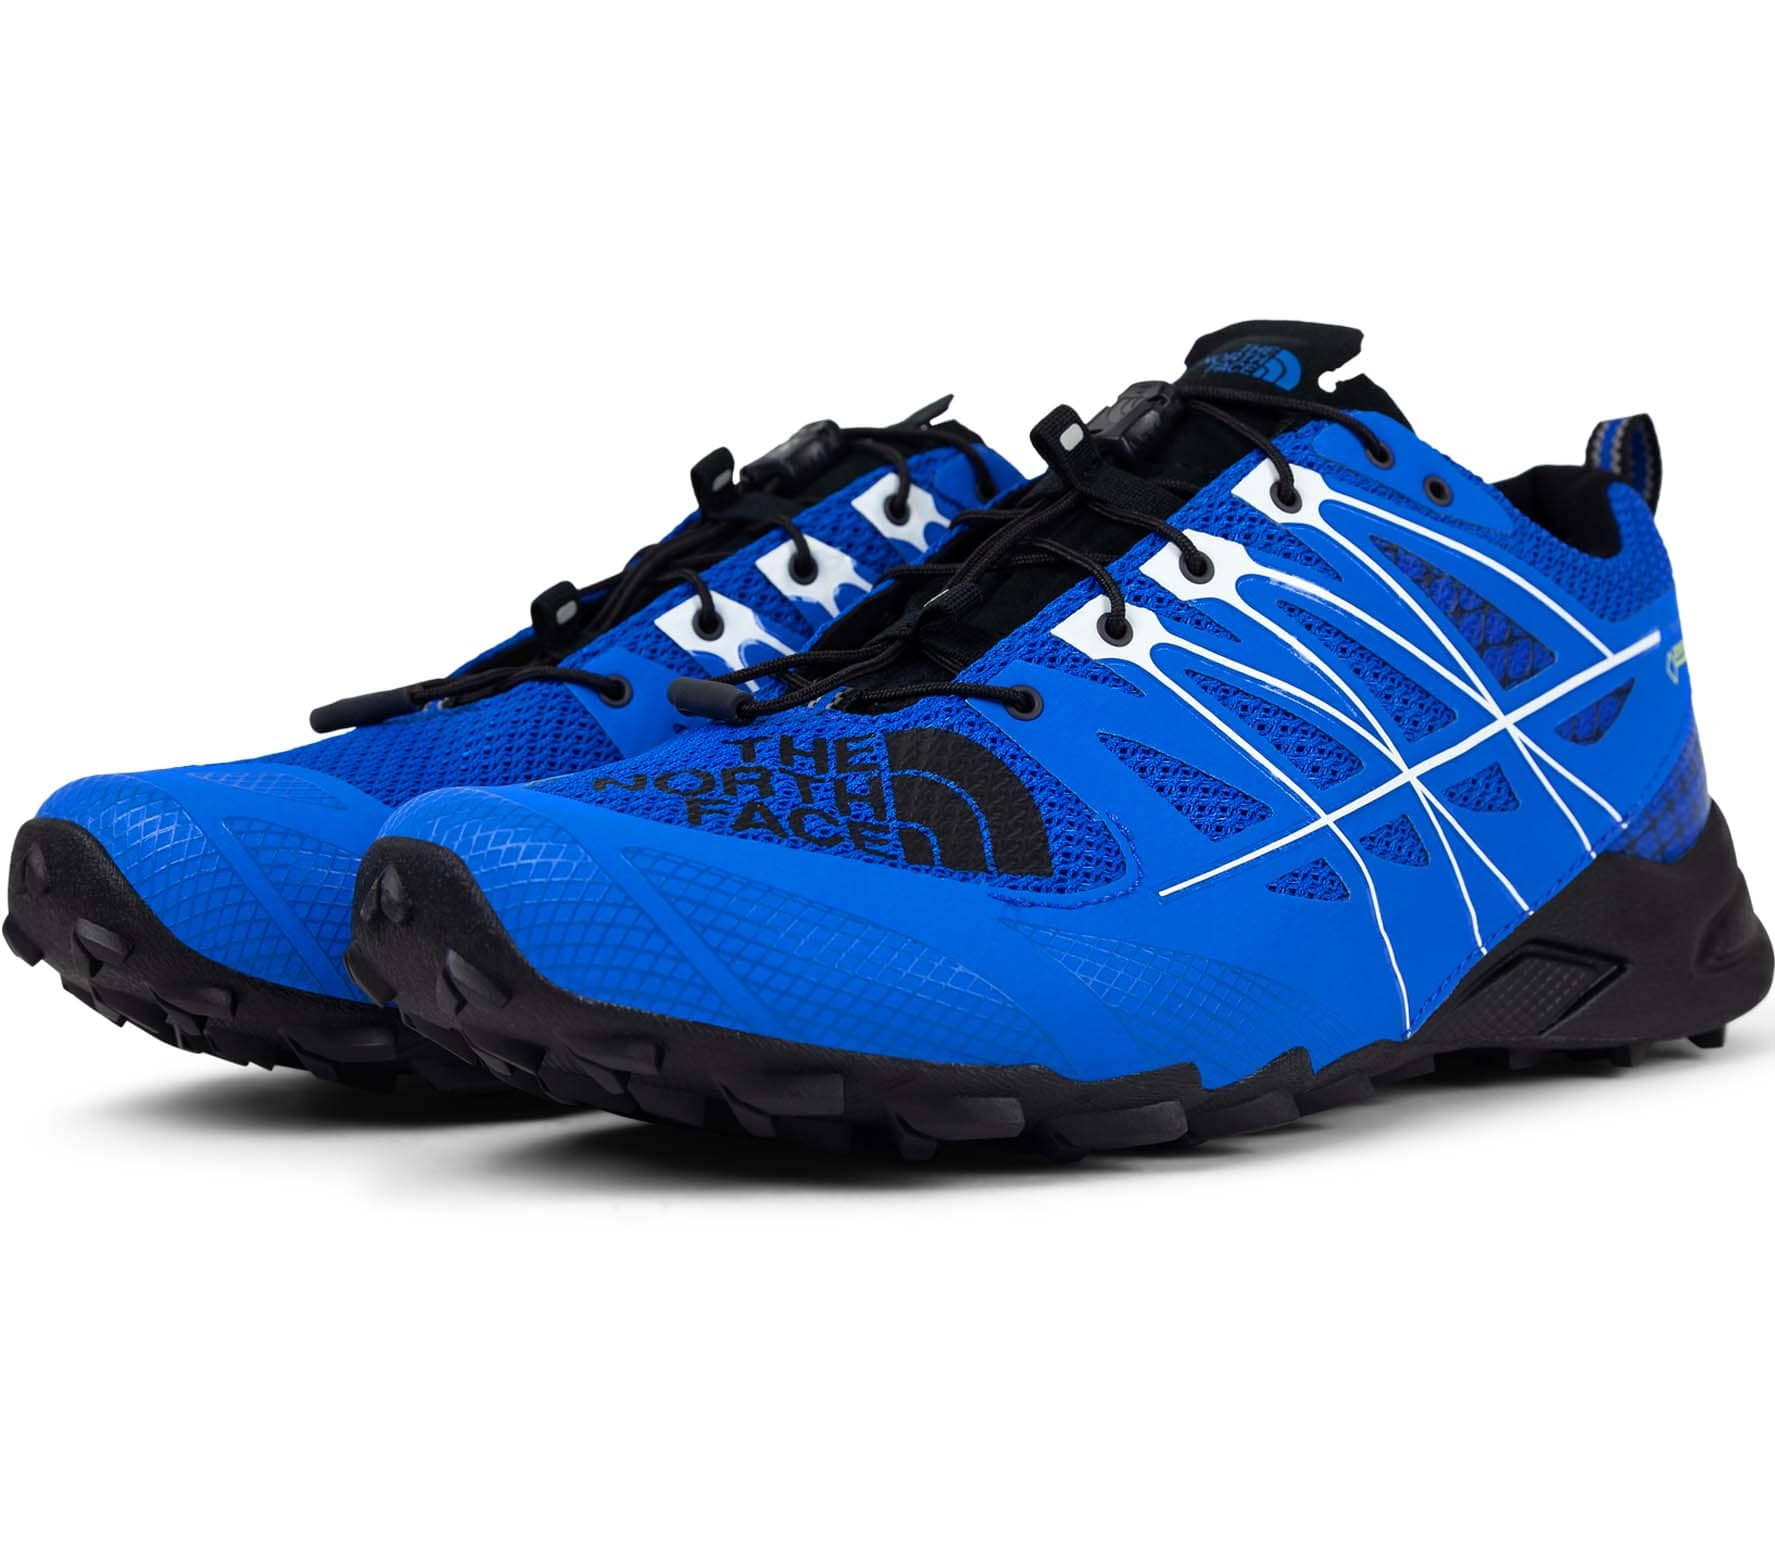 The North Face Ultra Mt II GTX Hommes Trail Running Shoe (bleublanc)